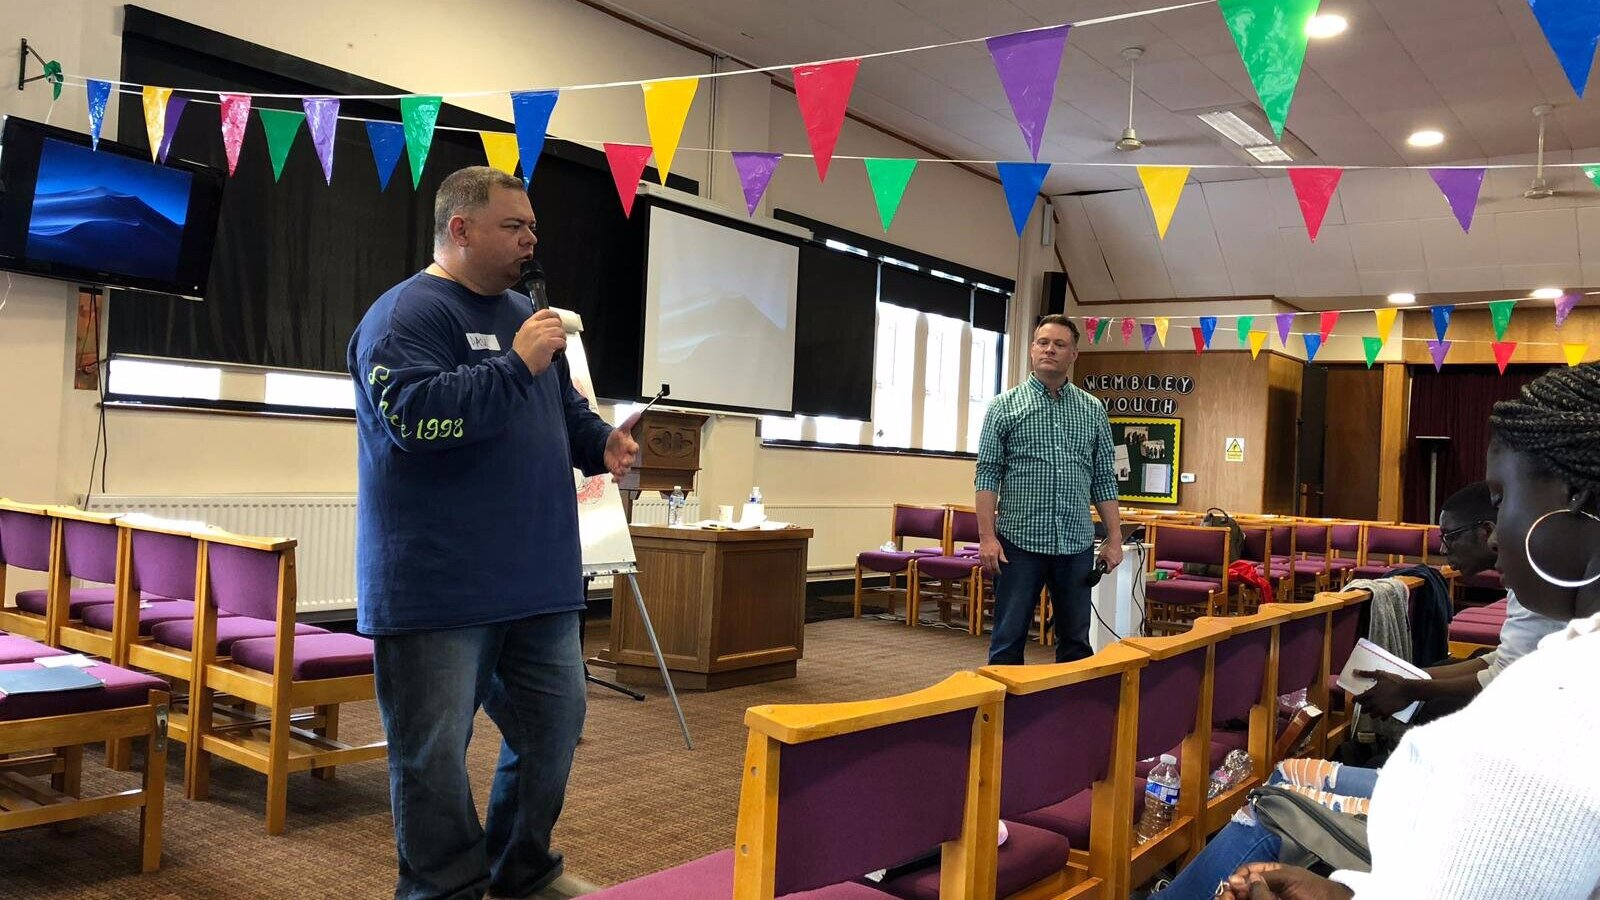 Paul & Jon conducting a Spiritual Challenge Session in the UK.